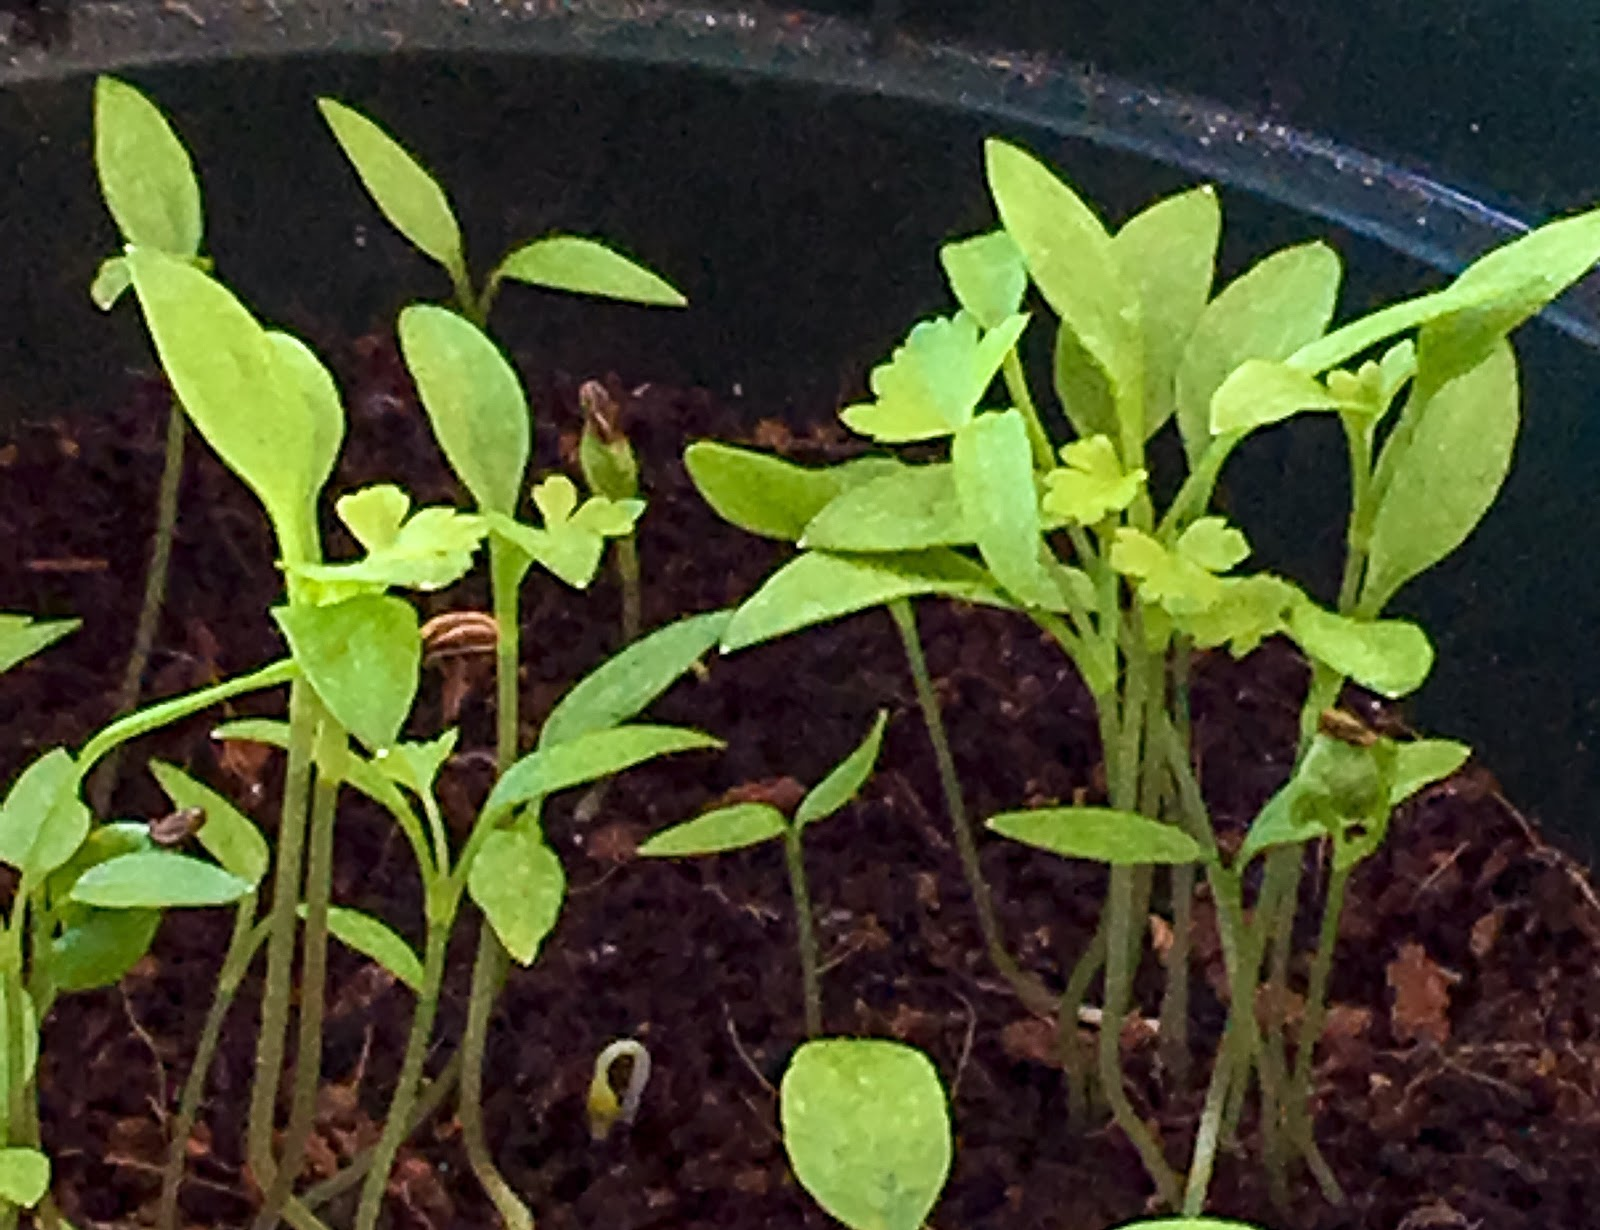 Parsley will first emerge as seen in the photo. When spring gardening from seed, you will want to be able to recognize emerging seedlings, especially when sowing outdoors, where you will need to distinguish them from the multitude of volunteer seedlings that will compete with yours.